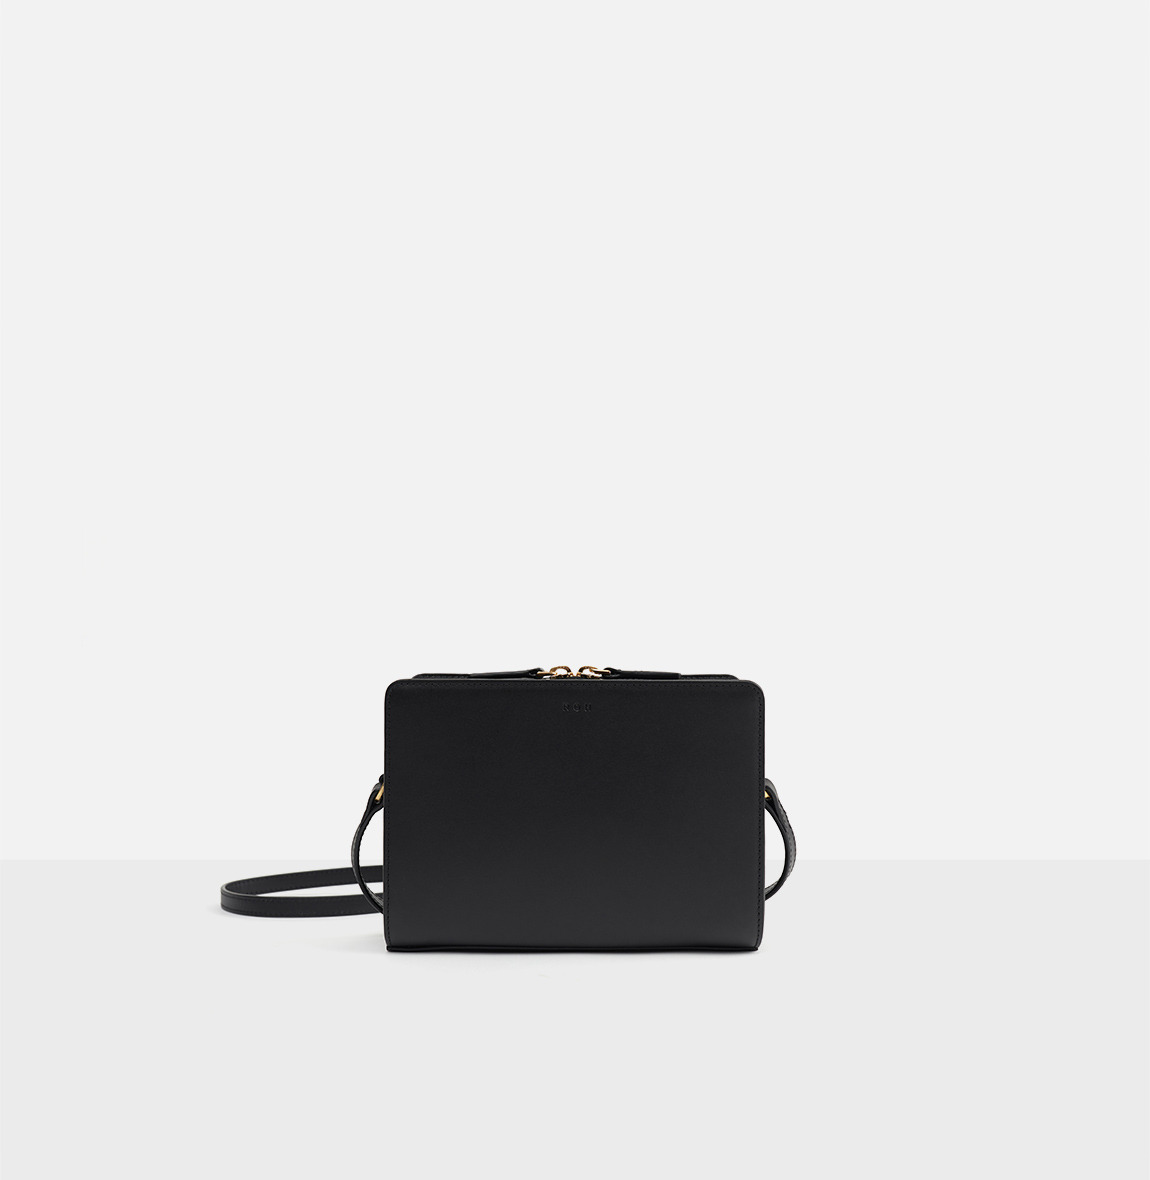 Square small shoulder bag Black